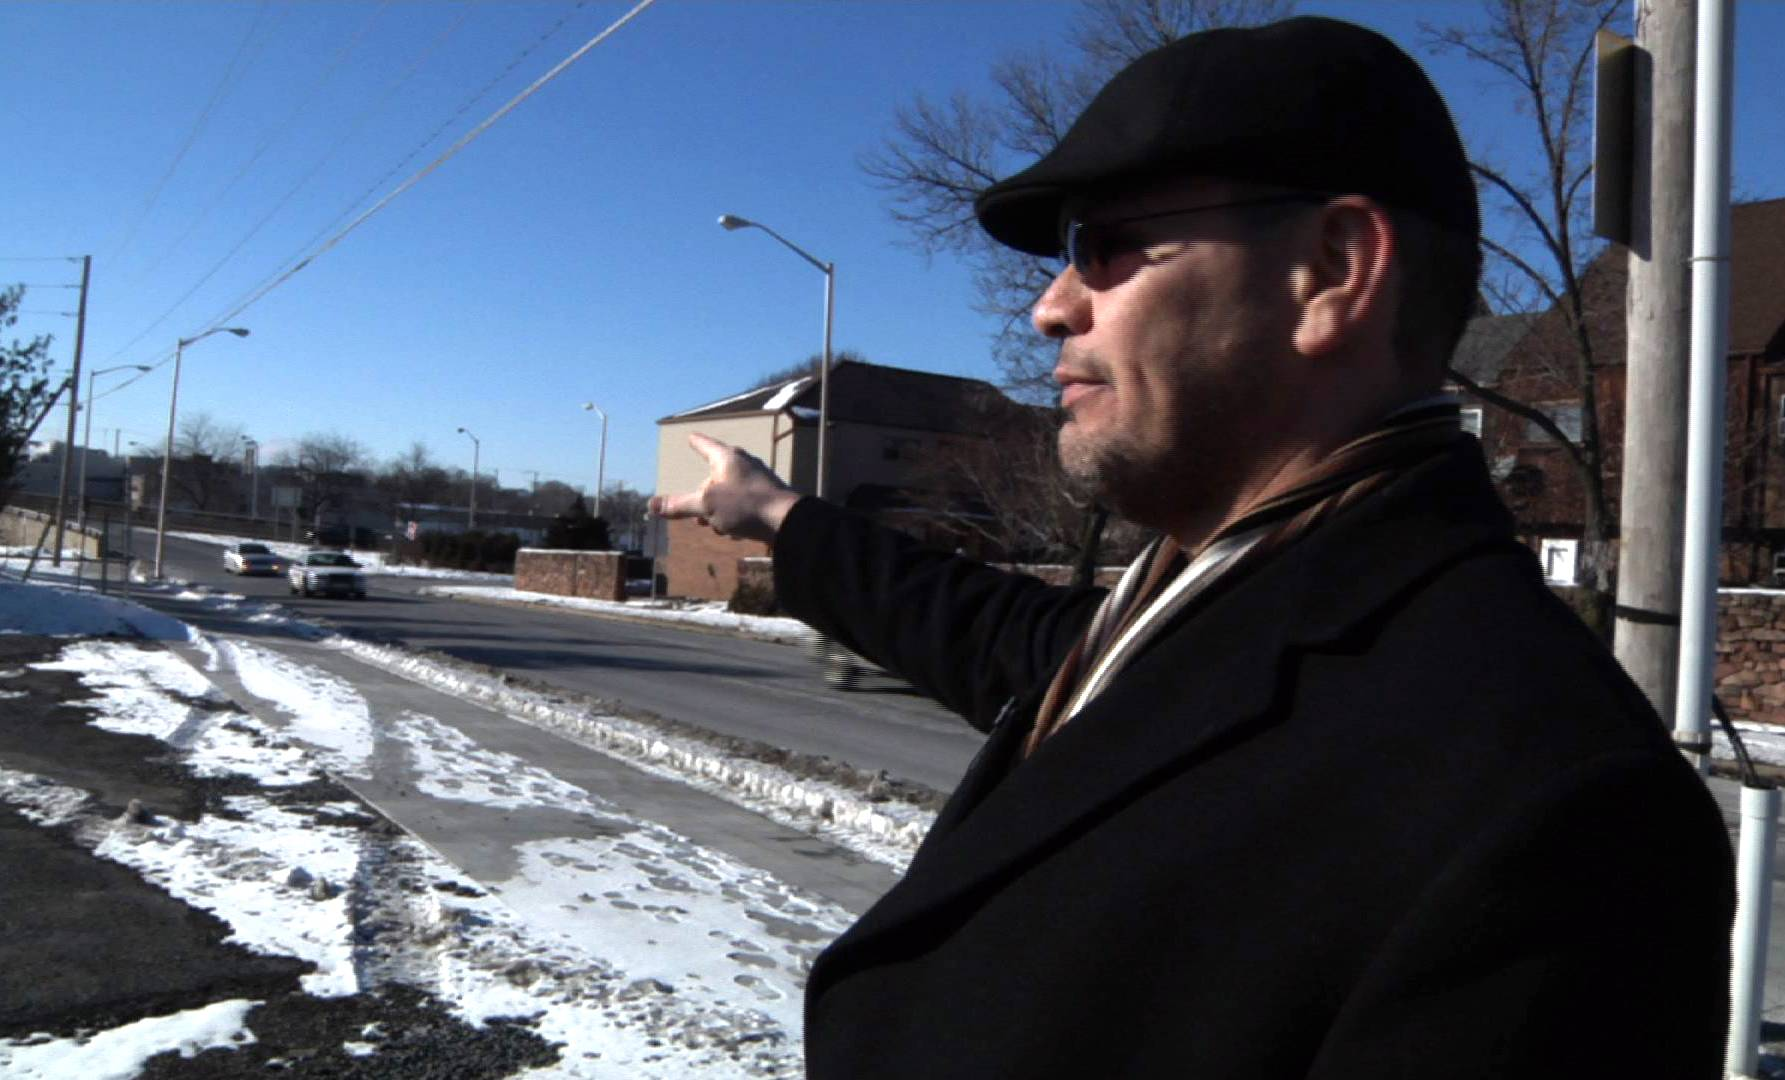 Ricardo Nieves stands in a parking lot where he says his rights were violated when a government contractor questioned him about his driving habits and asked him to provide a saliva sample.